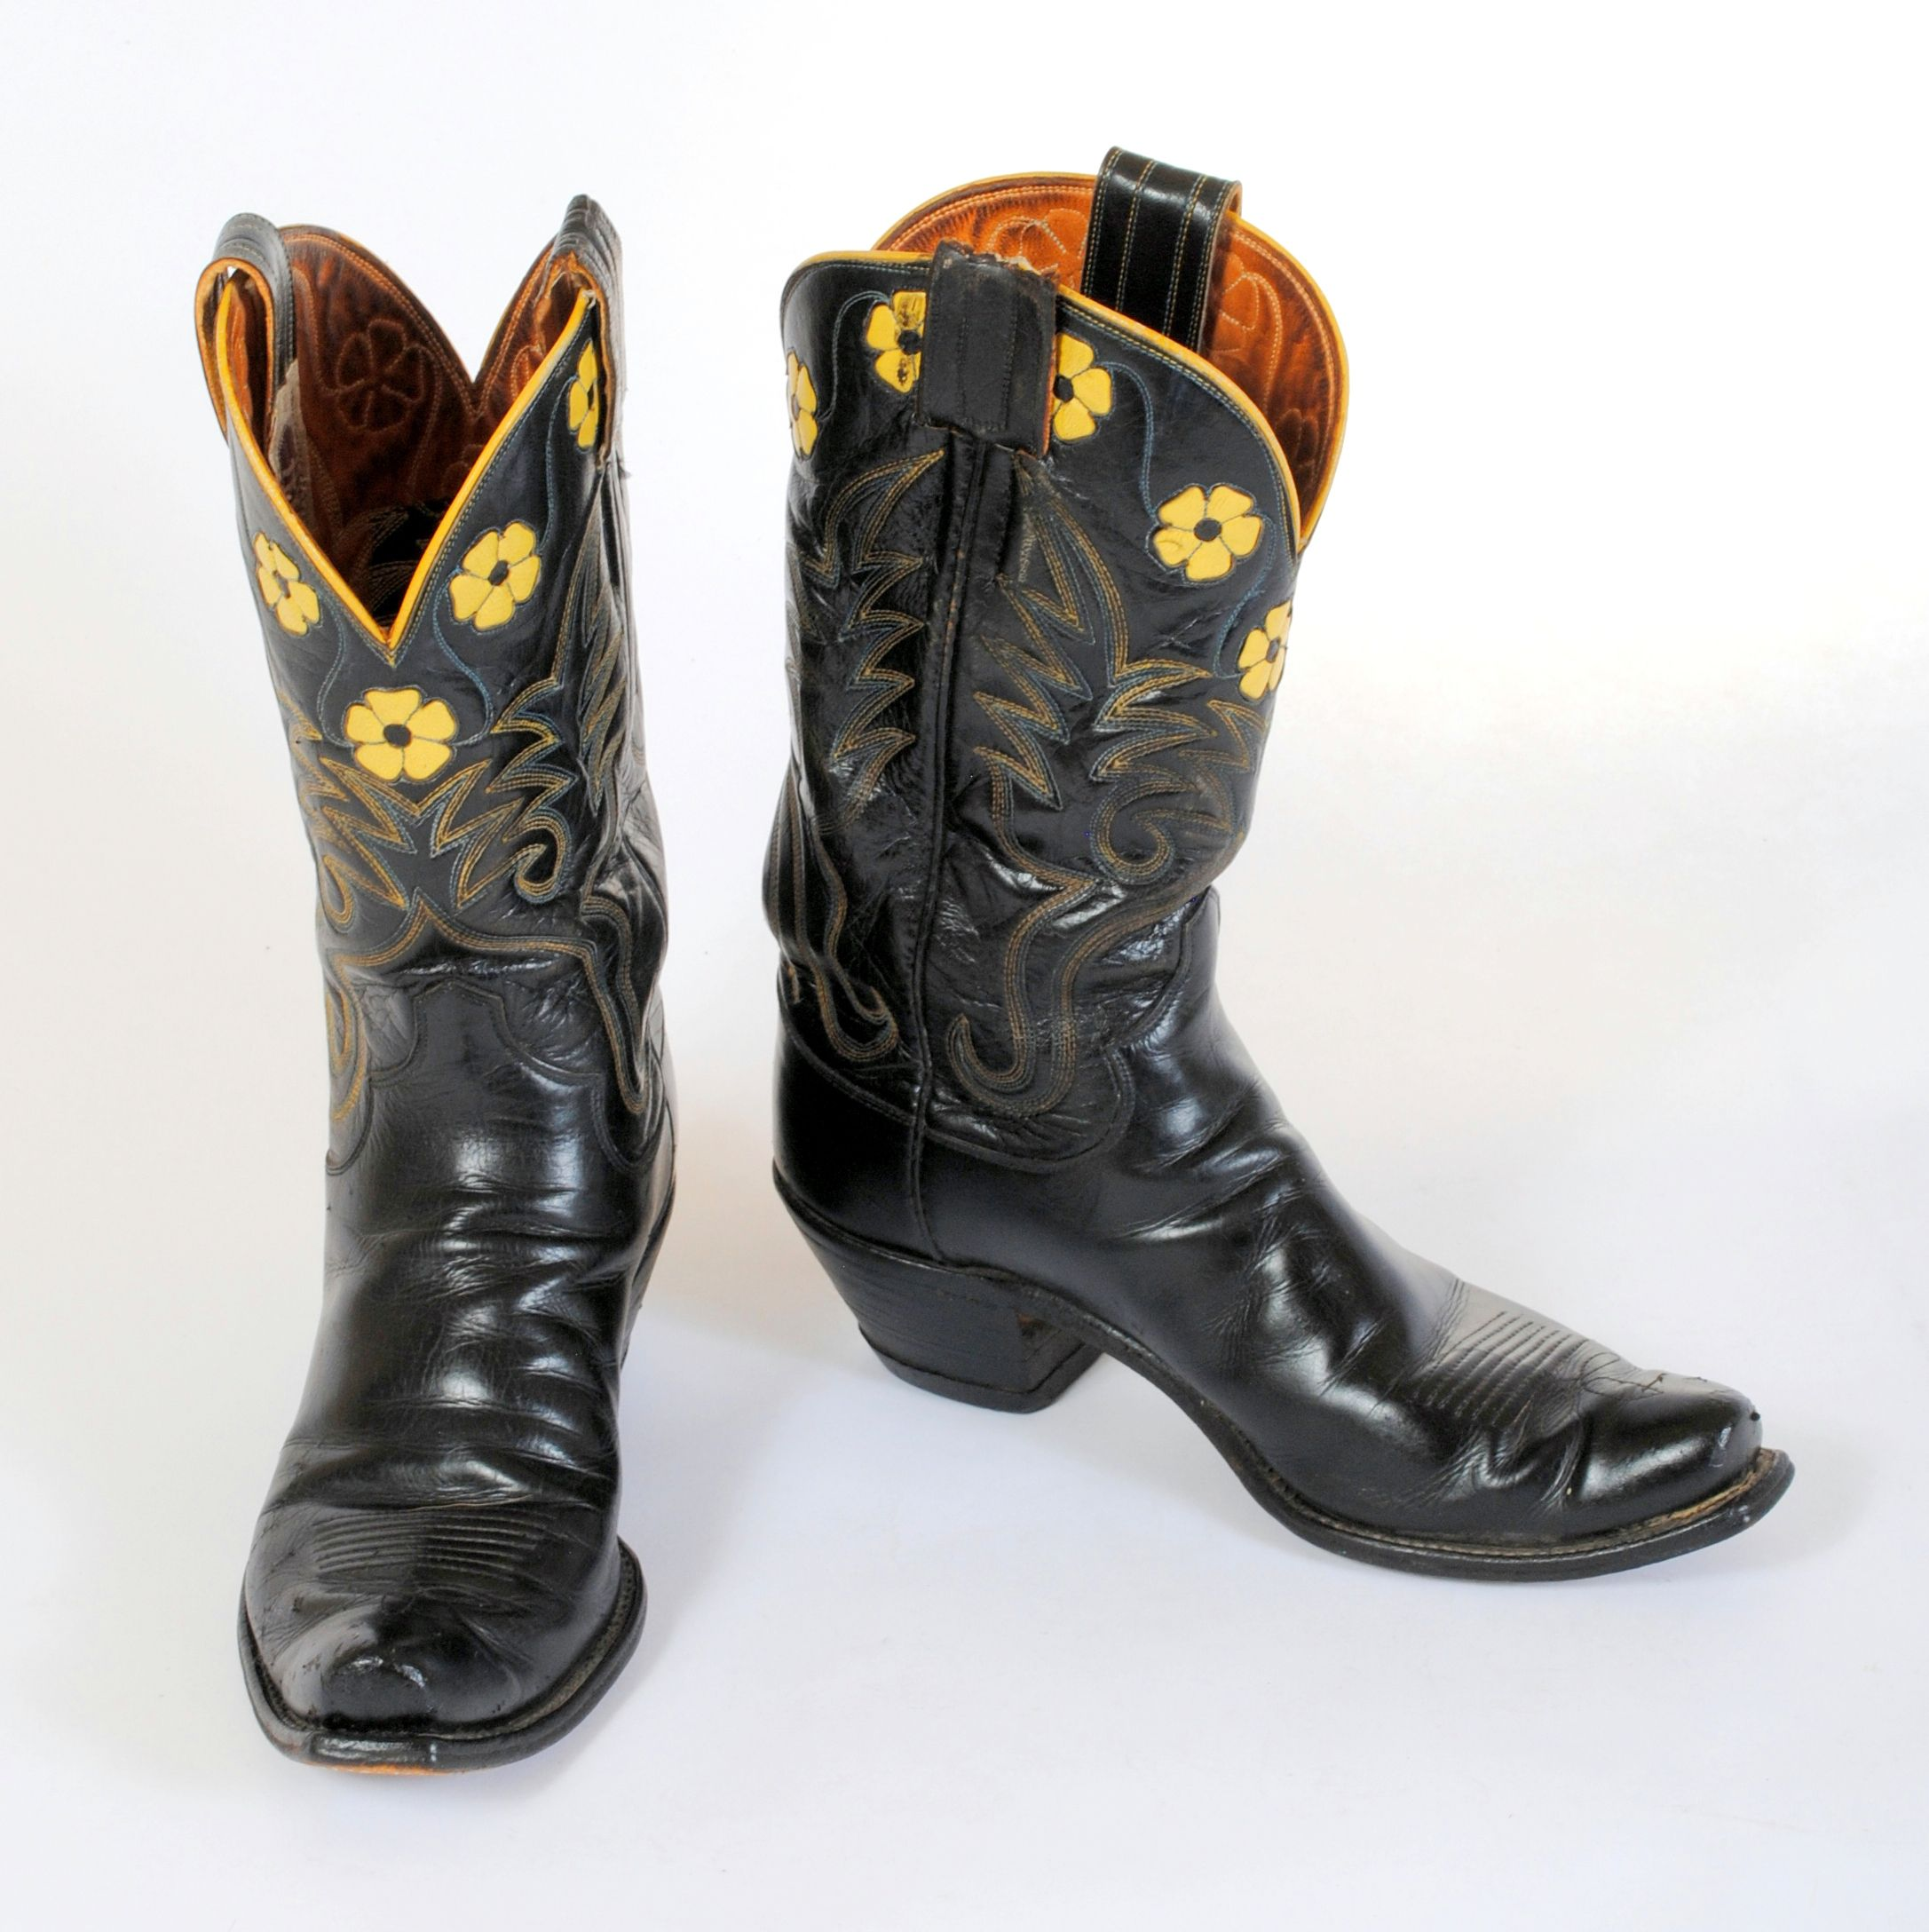 aef117ae52c These vintage cowboy boots are Hyer made in black and yellow and are  darling! https